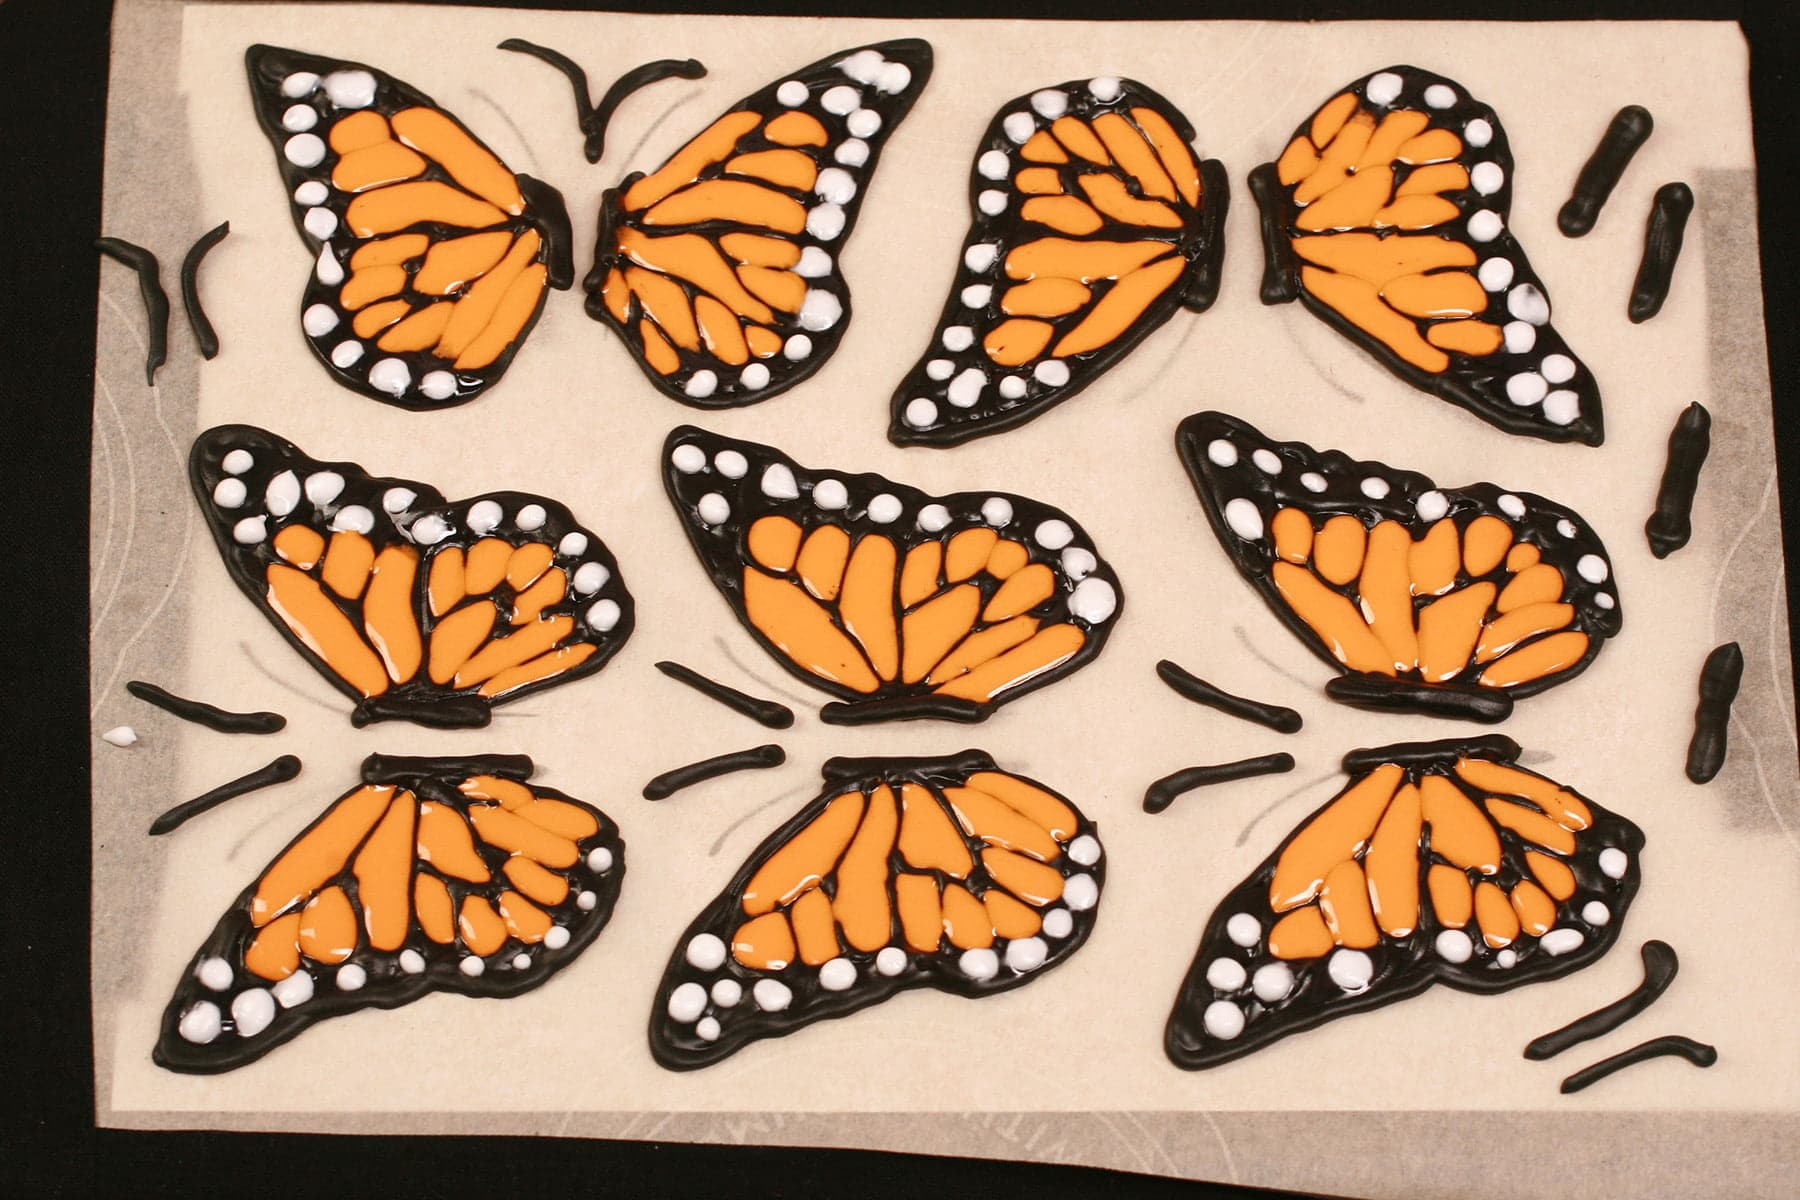 A tray of frosting piped monarch butterfly wings.